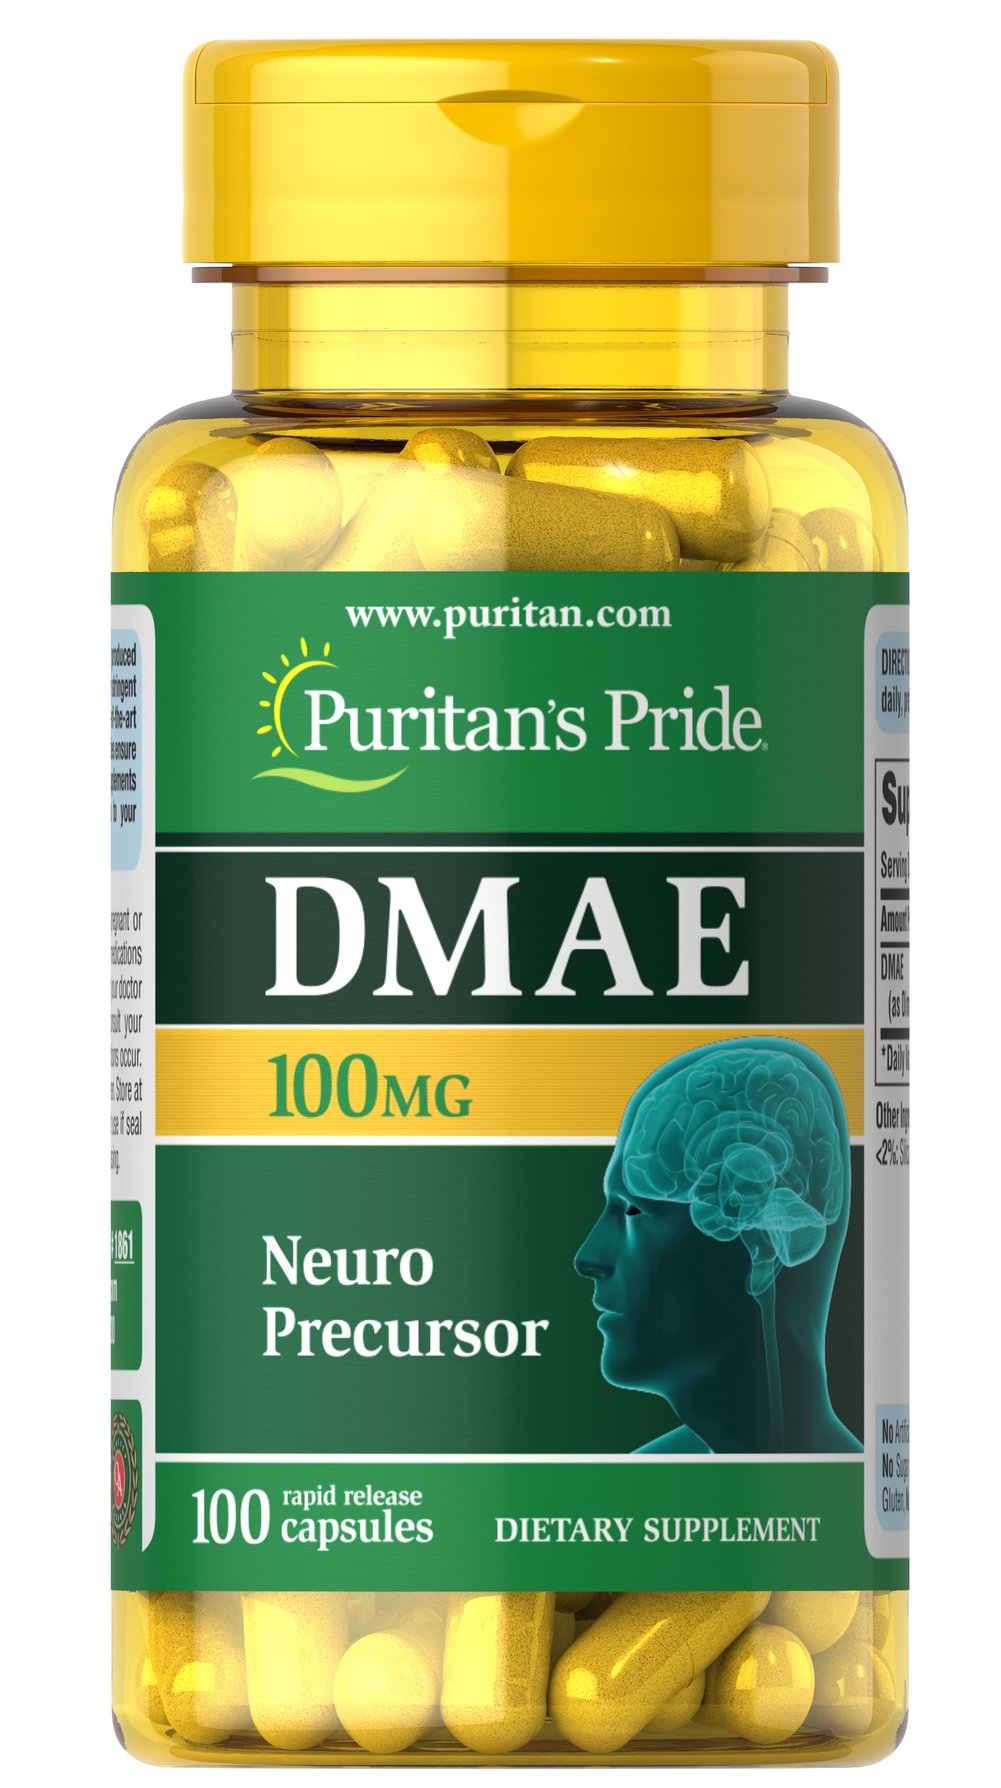 DMAE 100 mg <p>Often known as Dimethylaminoethanol, DMAE is a natural metabolite in the body. DMAE is related to the B factor choline and is a precursor to acetylcholine. Adults can take one capsule daily with a meal.</p> 100 Capsules 100 mg $10.99